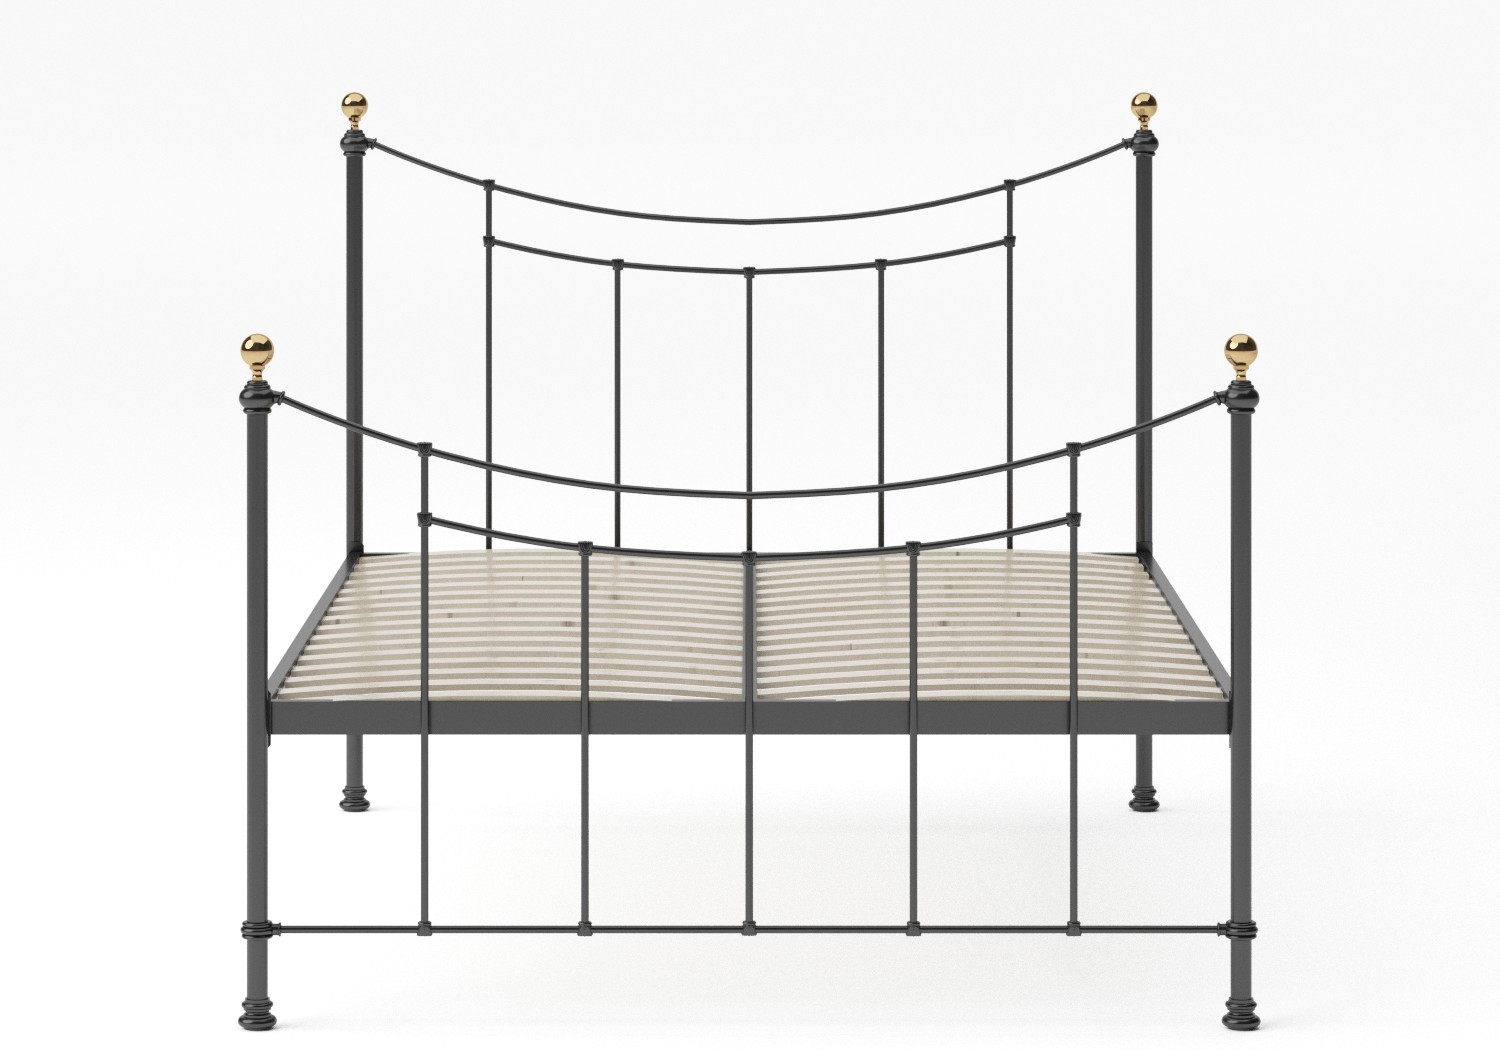 Virginia Single Iron/Metal in Satin Black with Brass details shown with slatted frame